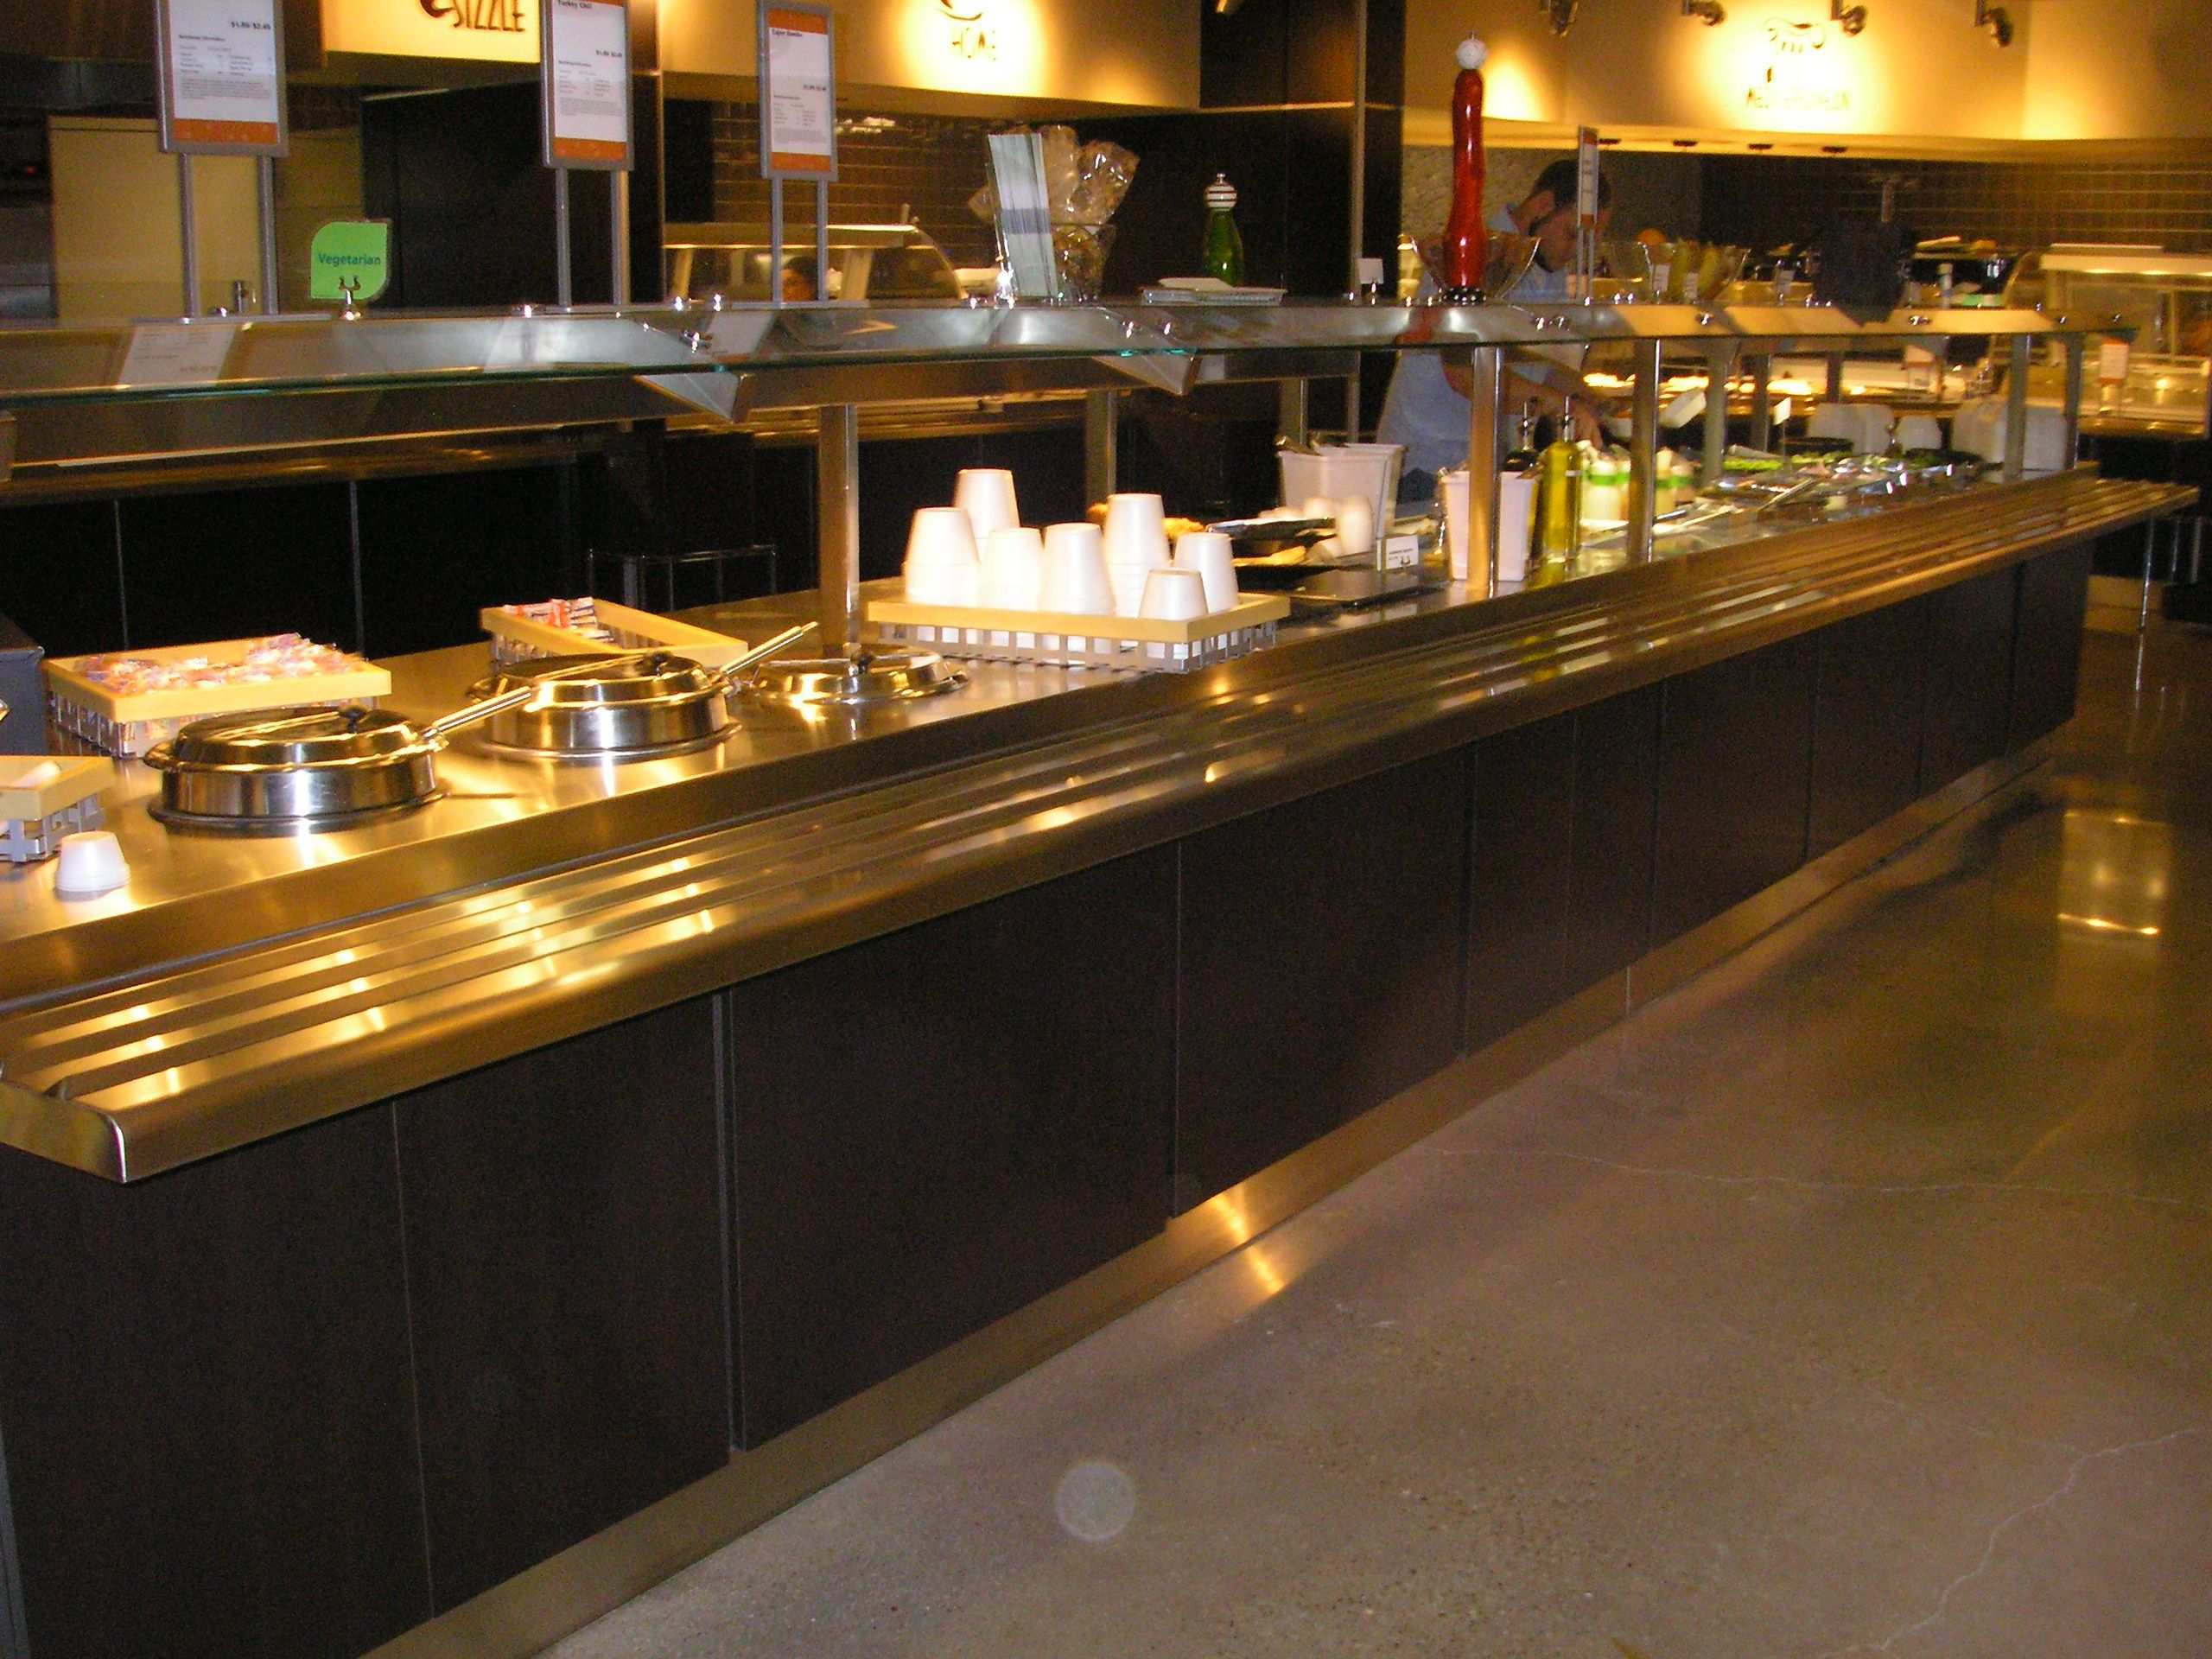 Glamorous Small Restaurant Kitchen Design With Classy Long Rectangular Serving Place For Food Impressive Small Restaurant Kitchen Design Ideas Restaurant Arbeit